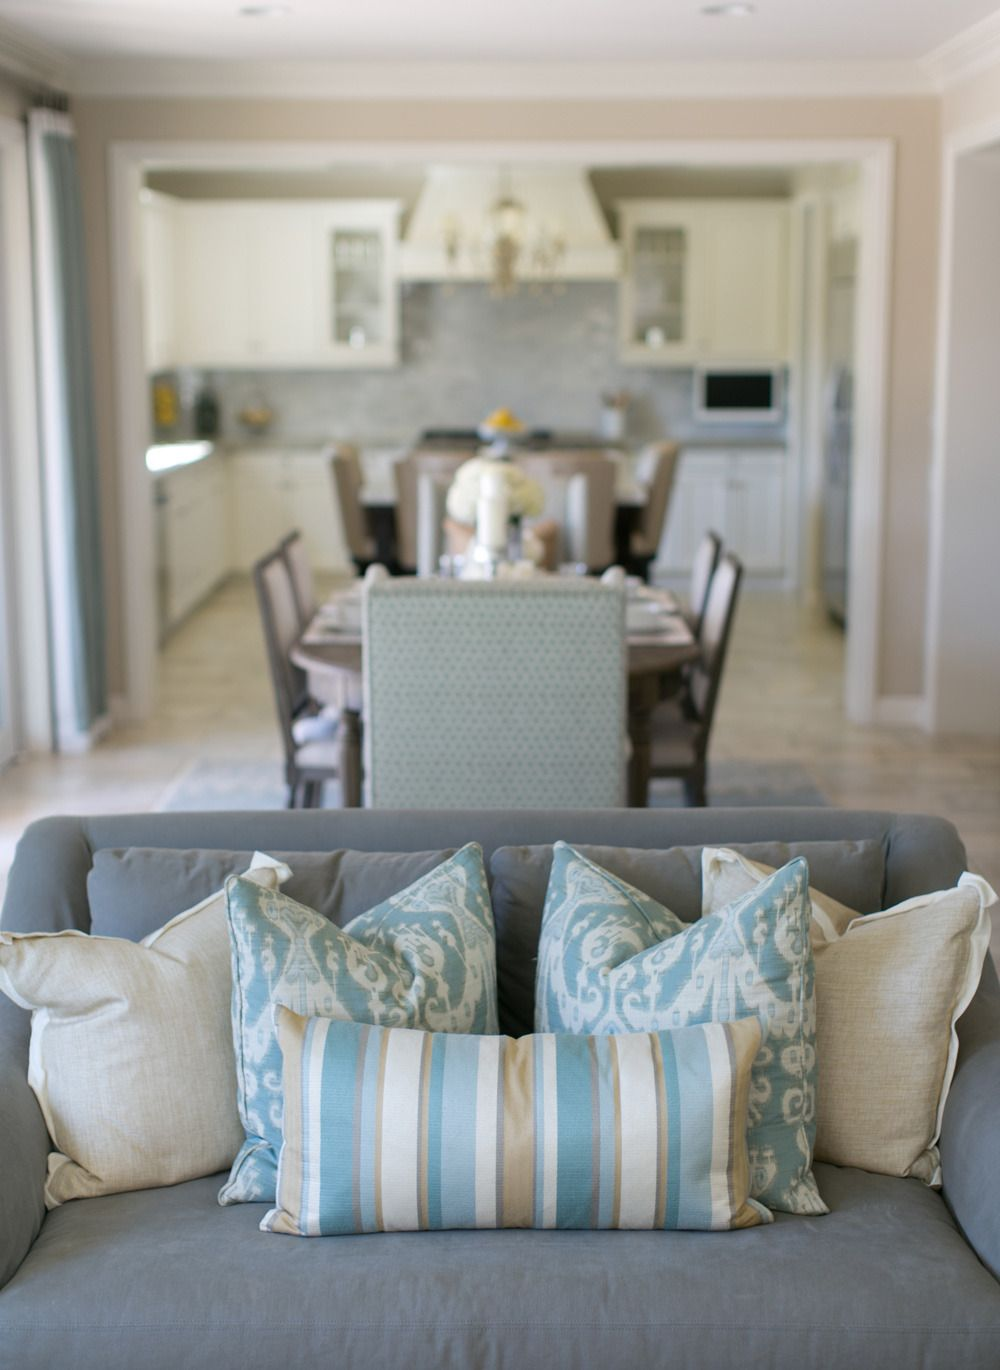 House of turquoise charlotte hale of plum pretty sugar pillows